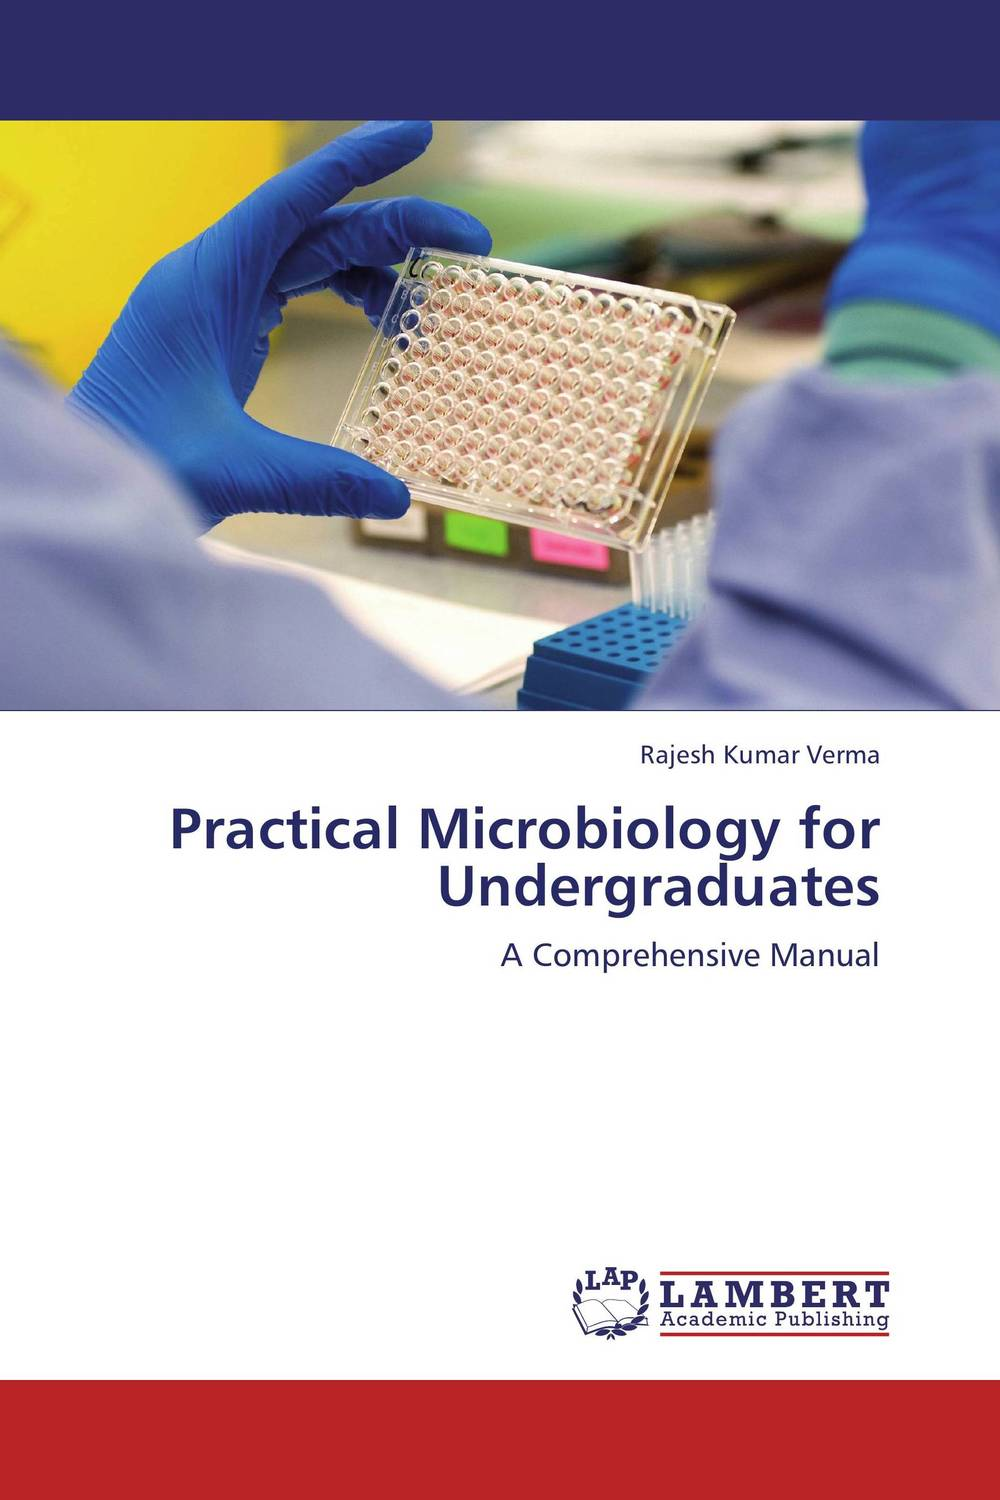 все цены на  Practical Microbiology for Undergraduates  онлайн